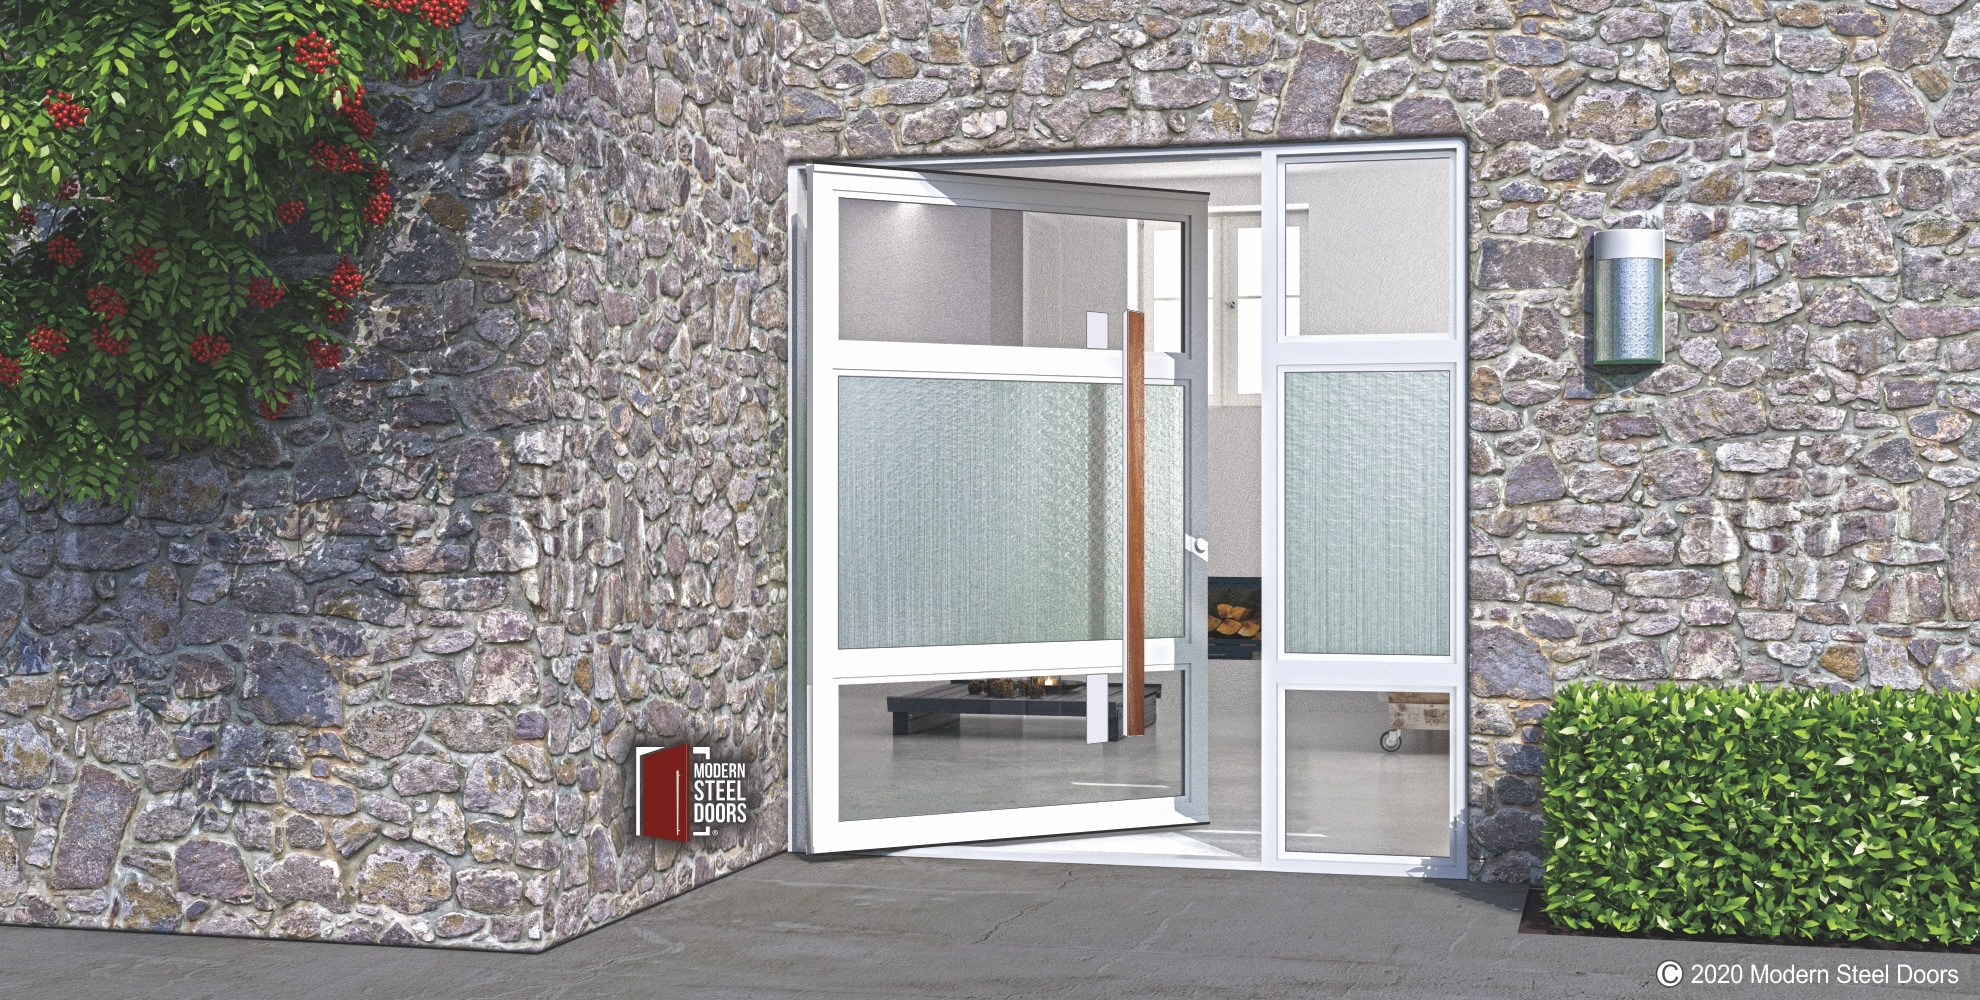 GLASS AND METAL ENTRY DOOR WITH WOODEN HARDWARE PULLS